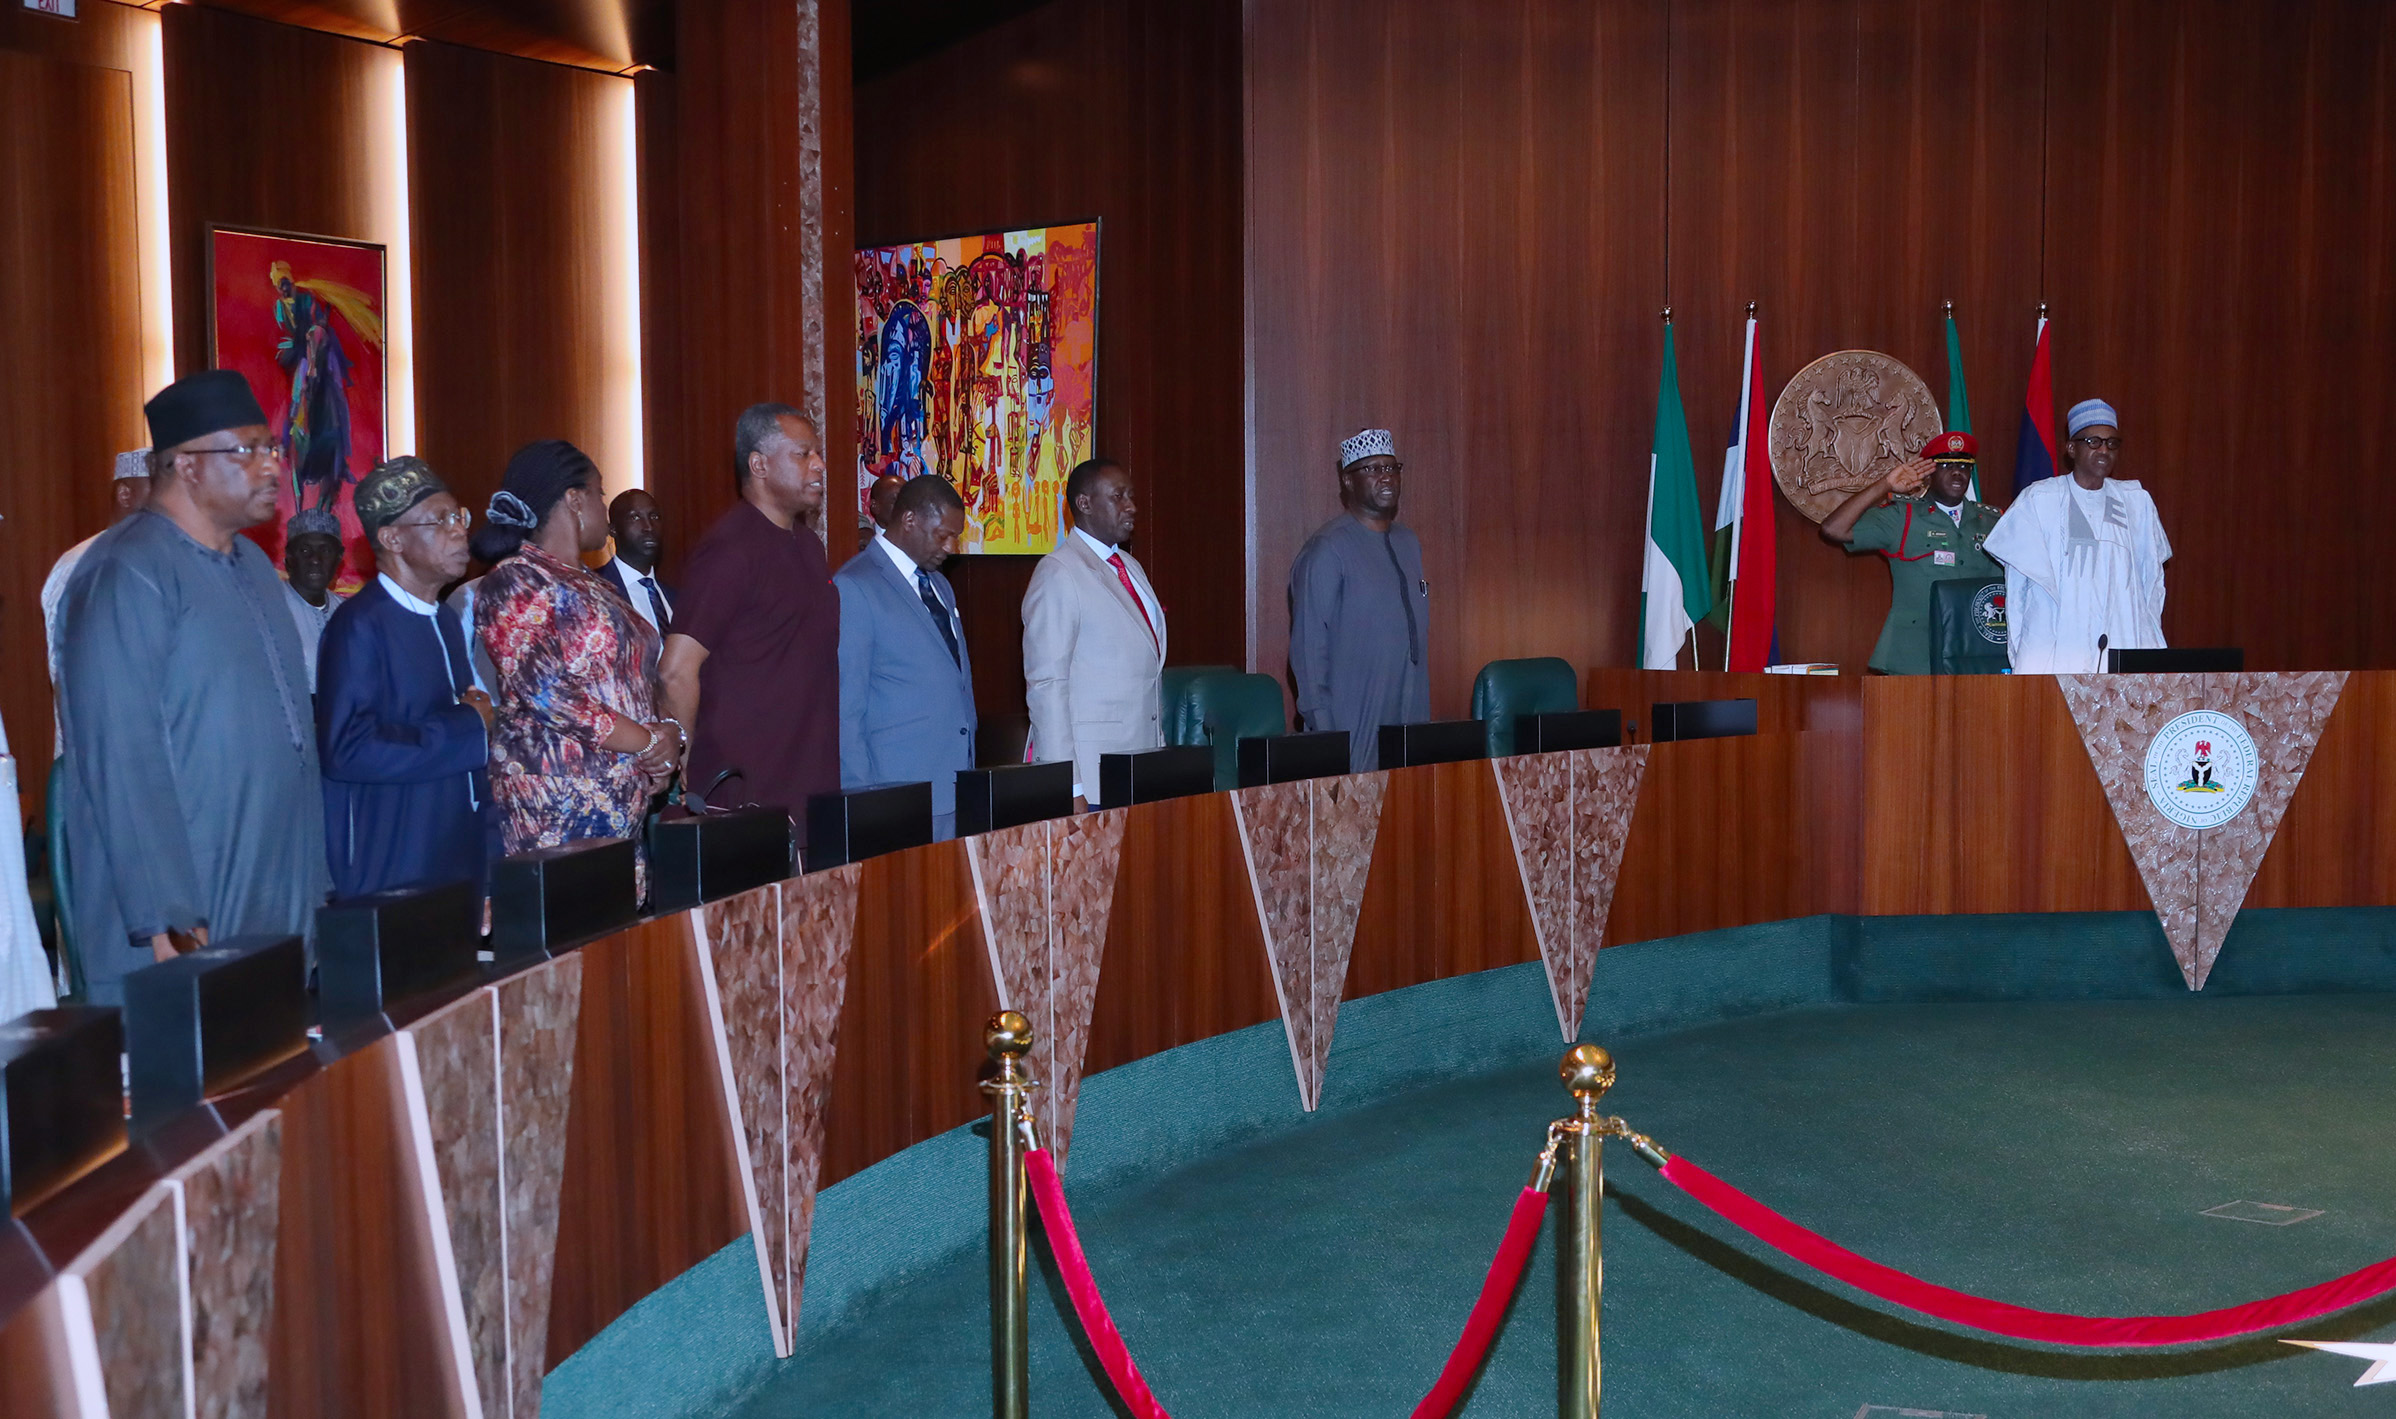 PRESIDENT BUHARI SIGNS EXECUTIVE ORDER 6. PIC 4. R-L;President Muhammadu Buhari, SGF Mr Boss Mustapha,NSA Majo General Babagana Munguno, Minister of Justice and Attorney General of the Federation, Abubakar Malami, Minister of Foergin Affairs, Mr. Geoffrey Onyeama, Minister of Finance, Mrs Kemi Adeosun and Minister of Internal Affairs, Lt General Abdulrahman Dambazzau during the signing of Executive Order 6 on the Preservation of Suspicious Assets Connected with Corruption held at the Council Chambers State House, Abuja. PHOTO; SUNDAY AGHAEZE. JULY 5 2018.